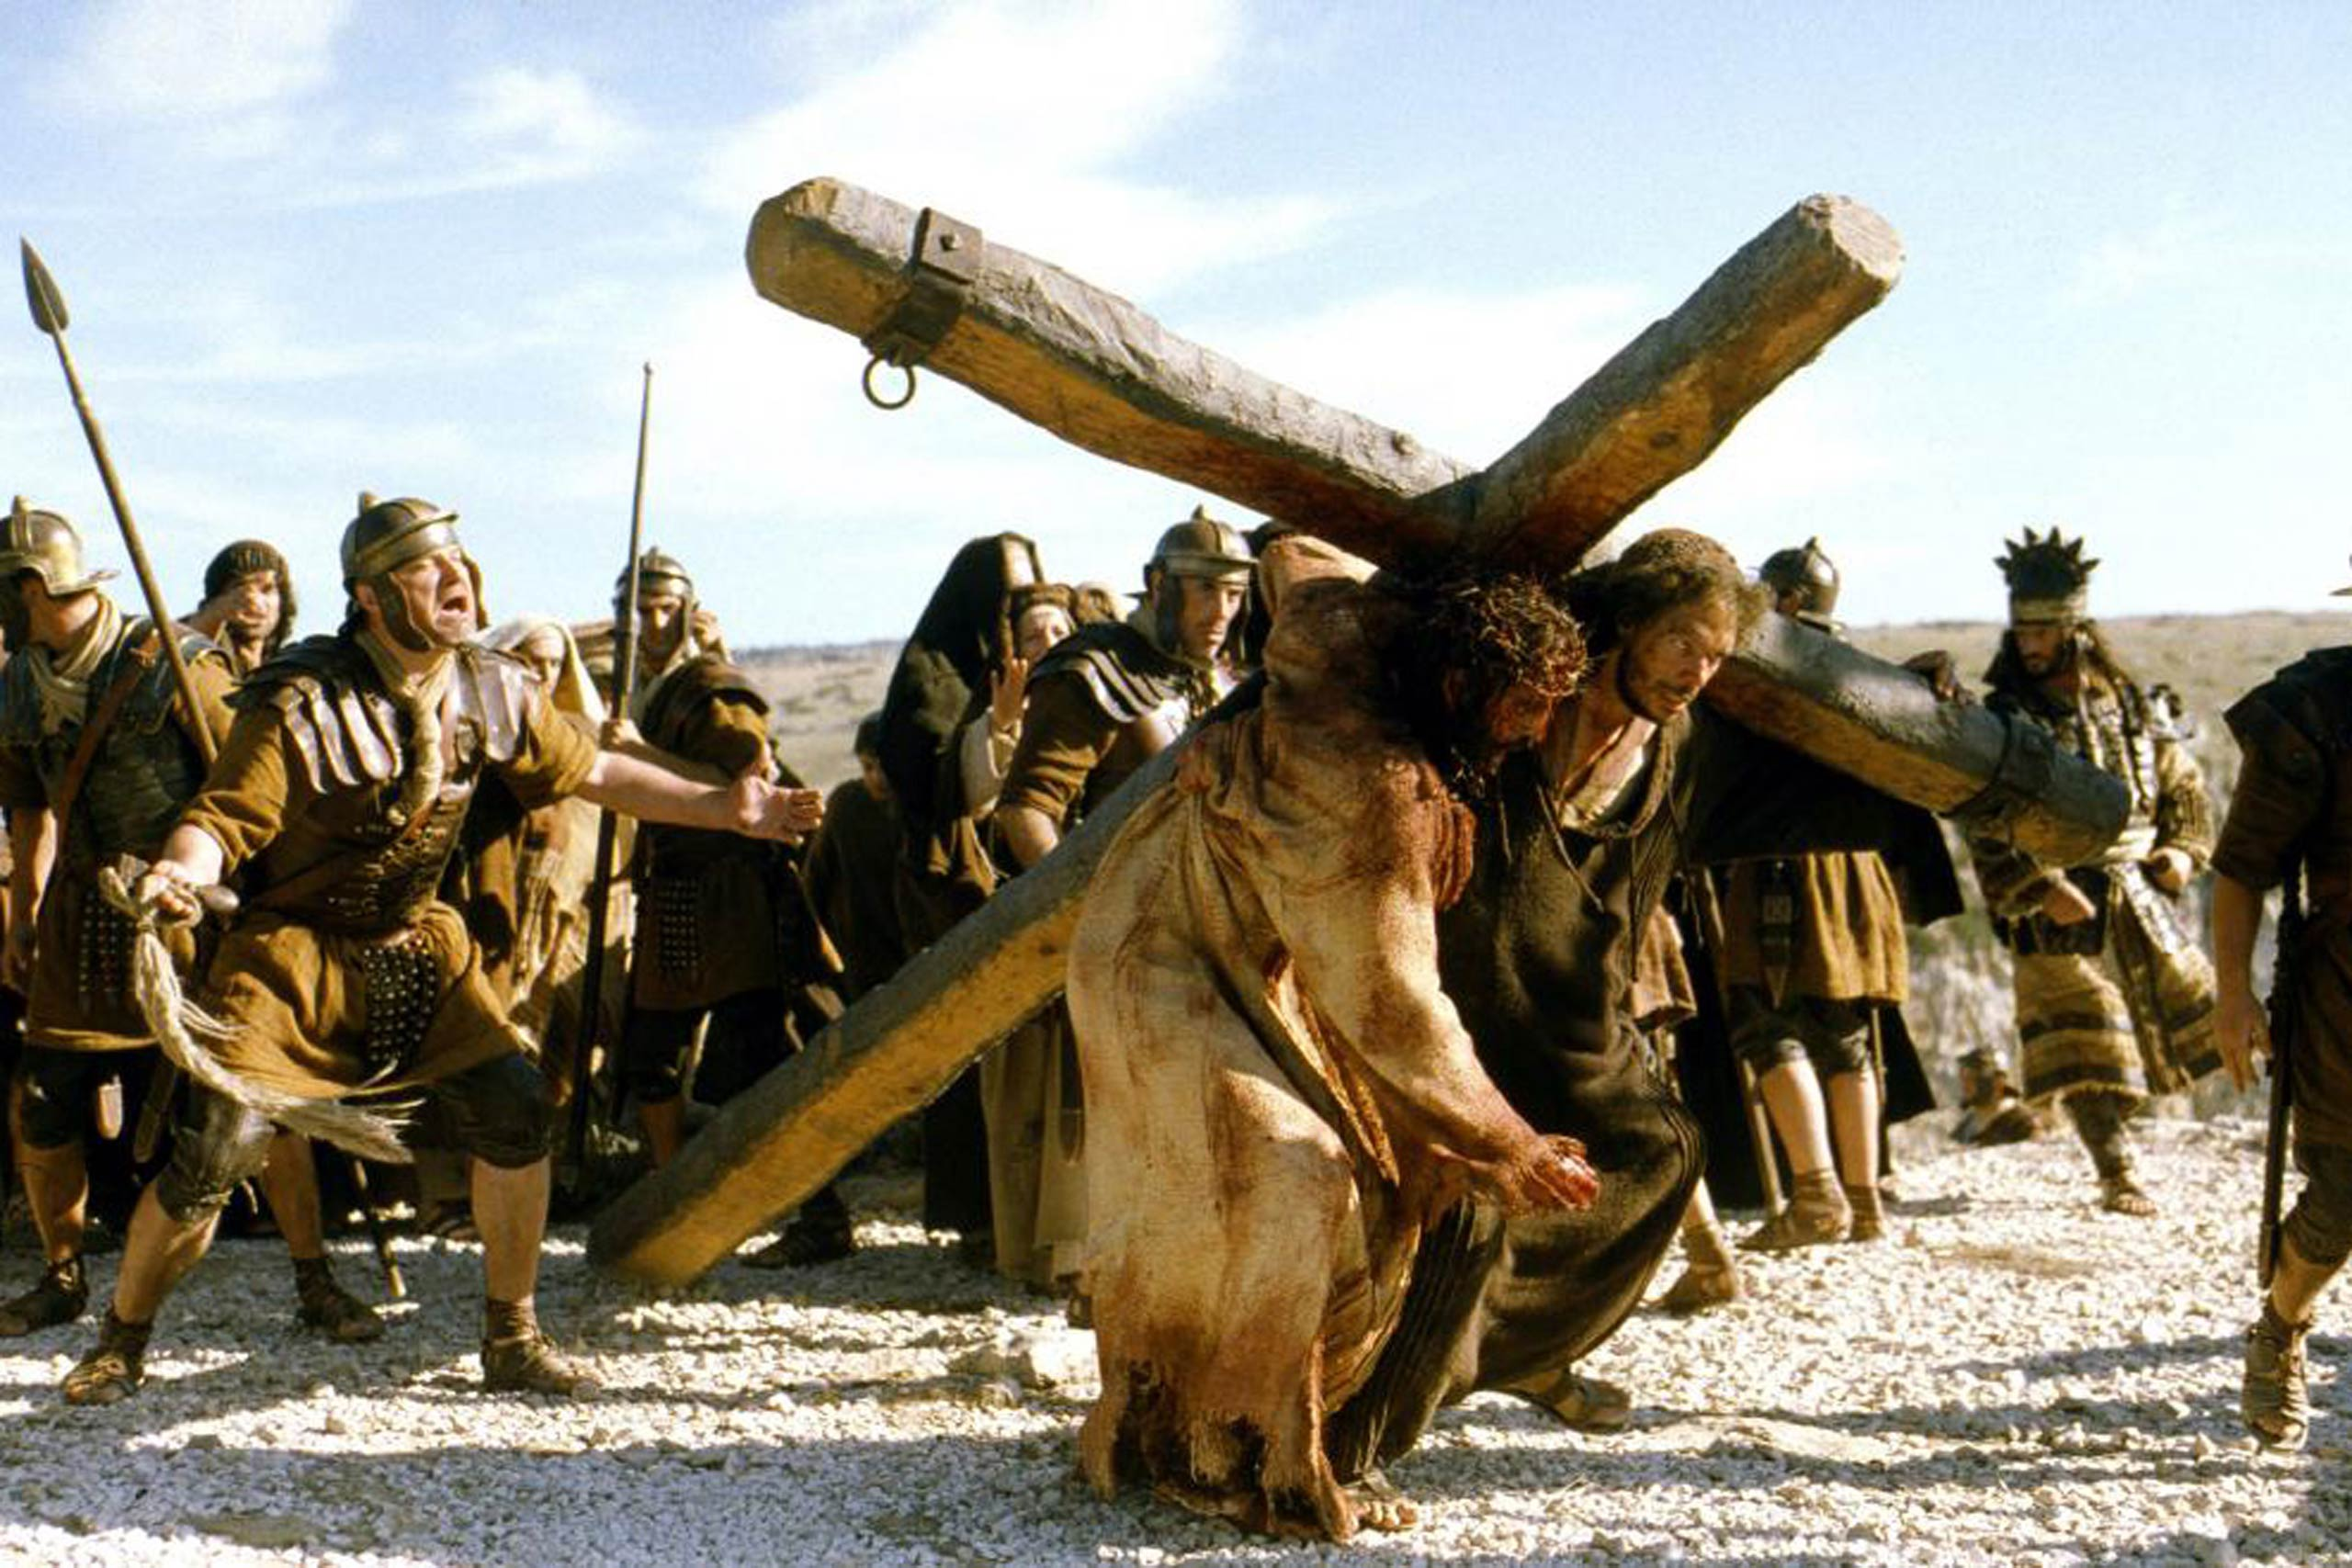 <strong><i>The Passion of the Christ</i>, 2004</strong> This film, depicting the torture and eventual death of Jesus, was one of the biggest hits of all time. But it hadn't necessarily had a clear path to acclaim; pre-release, the film was pilloried for perceived anti-Semitism. As audiences flocked over the weeks preceding Easter, some criticized director Mel Gibson for an excessively violent and sadistic vision of Jesus's death.